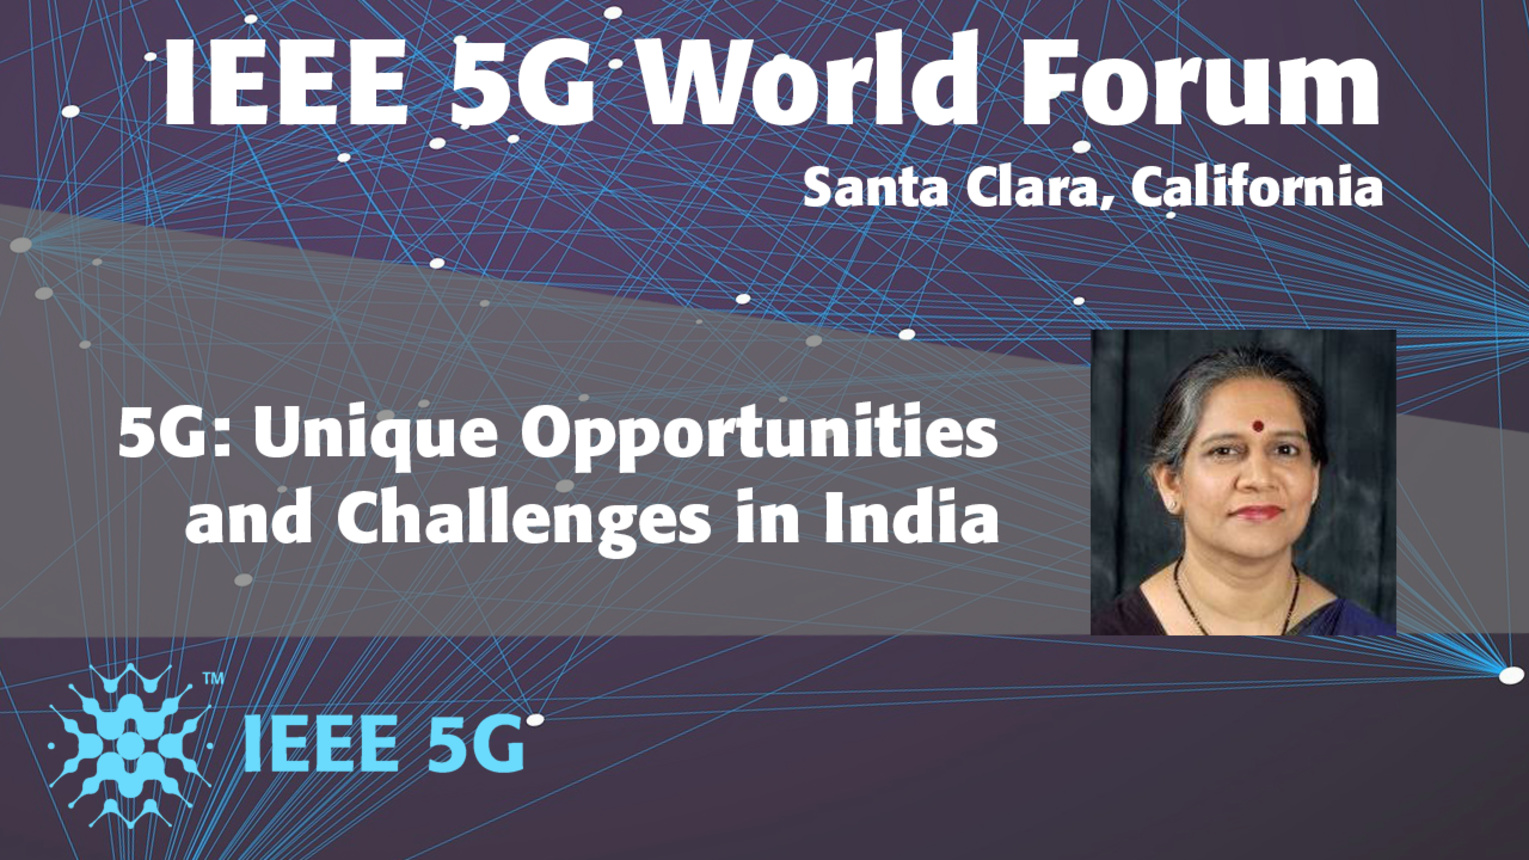 The Role of Standards for 5G Adoption in India - 5G World Forum 2018